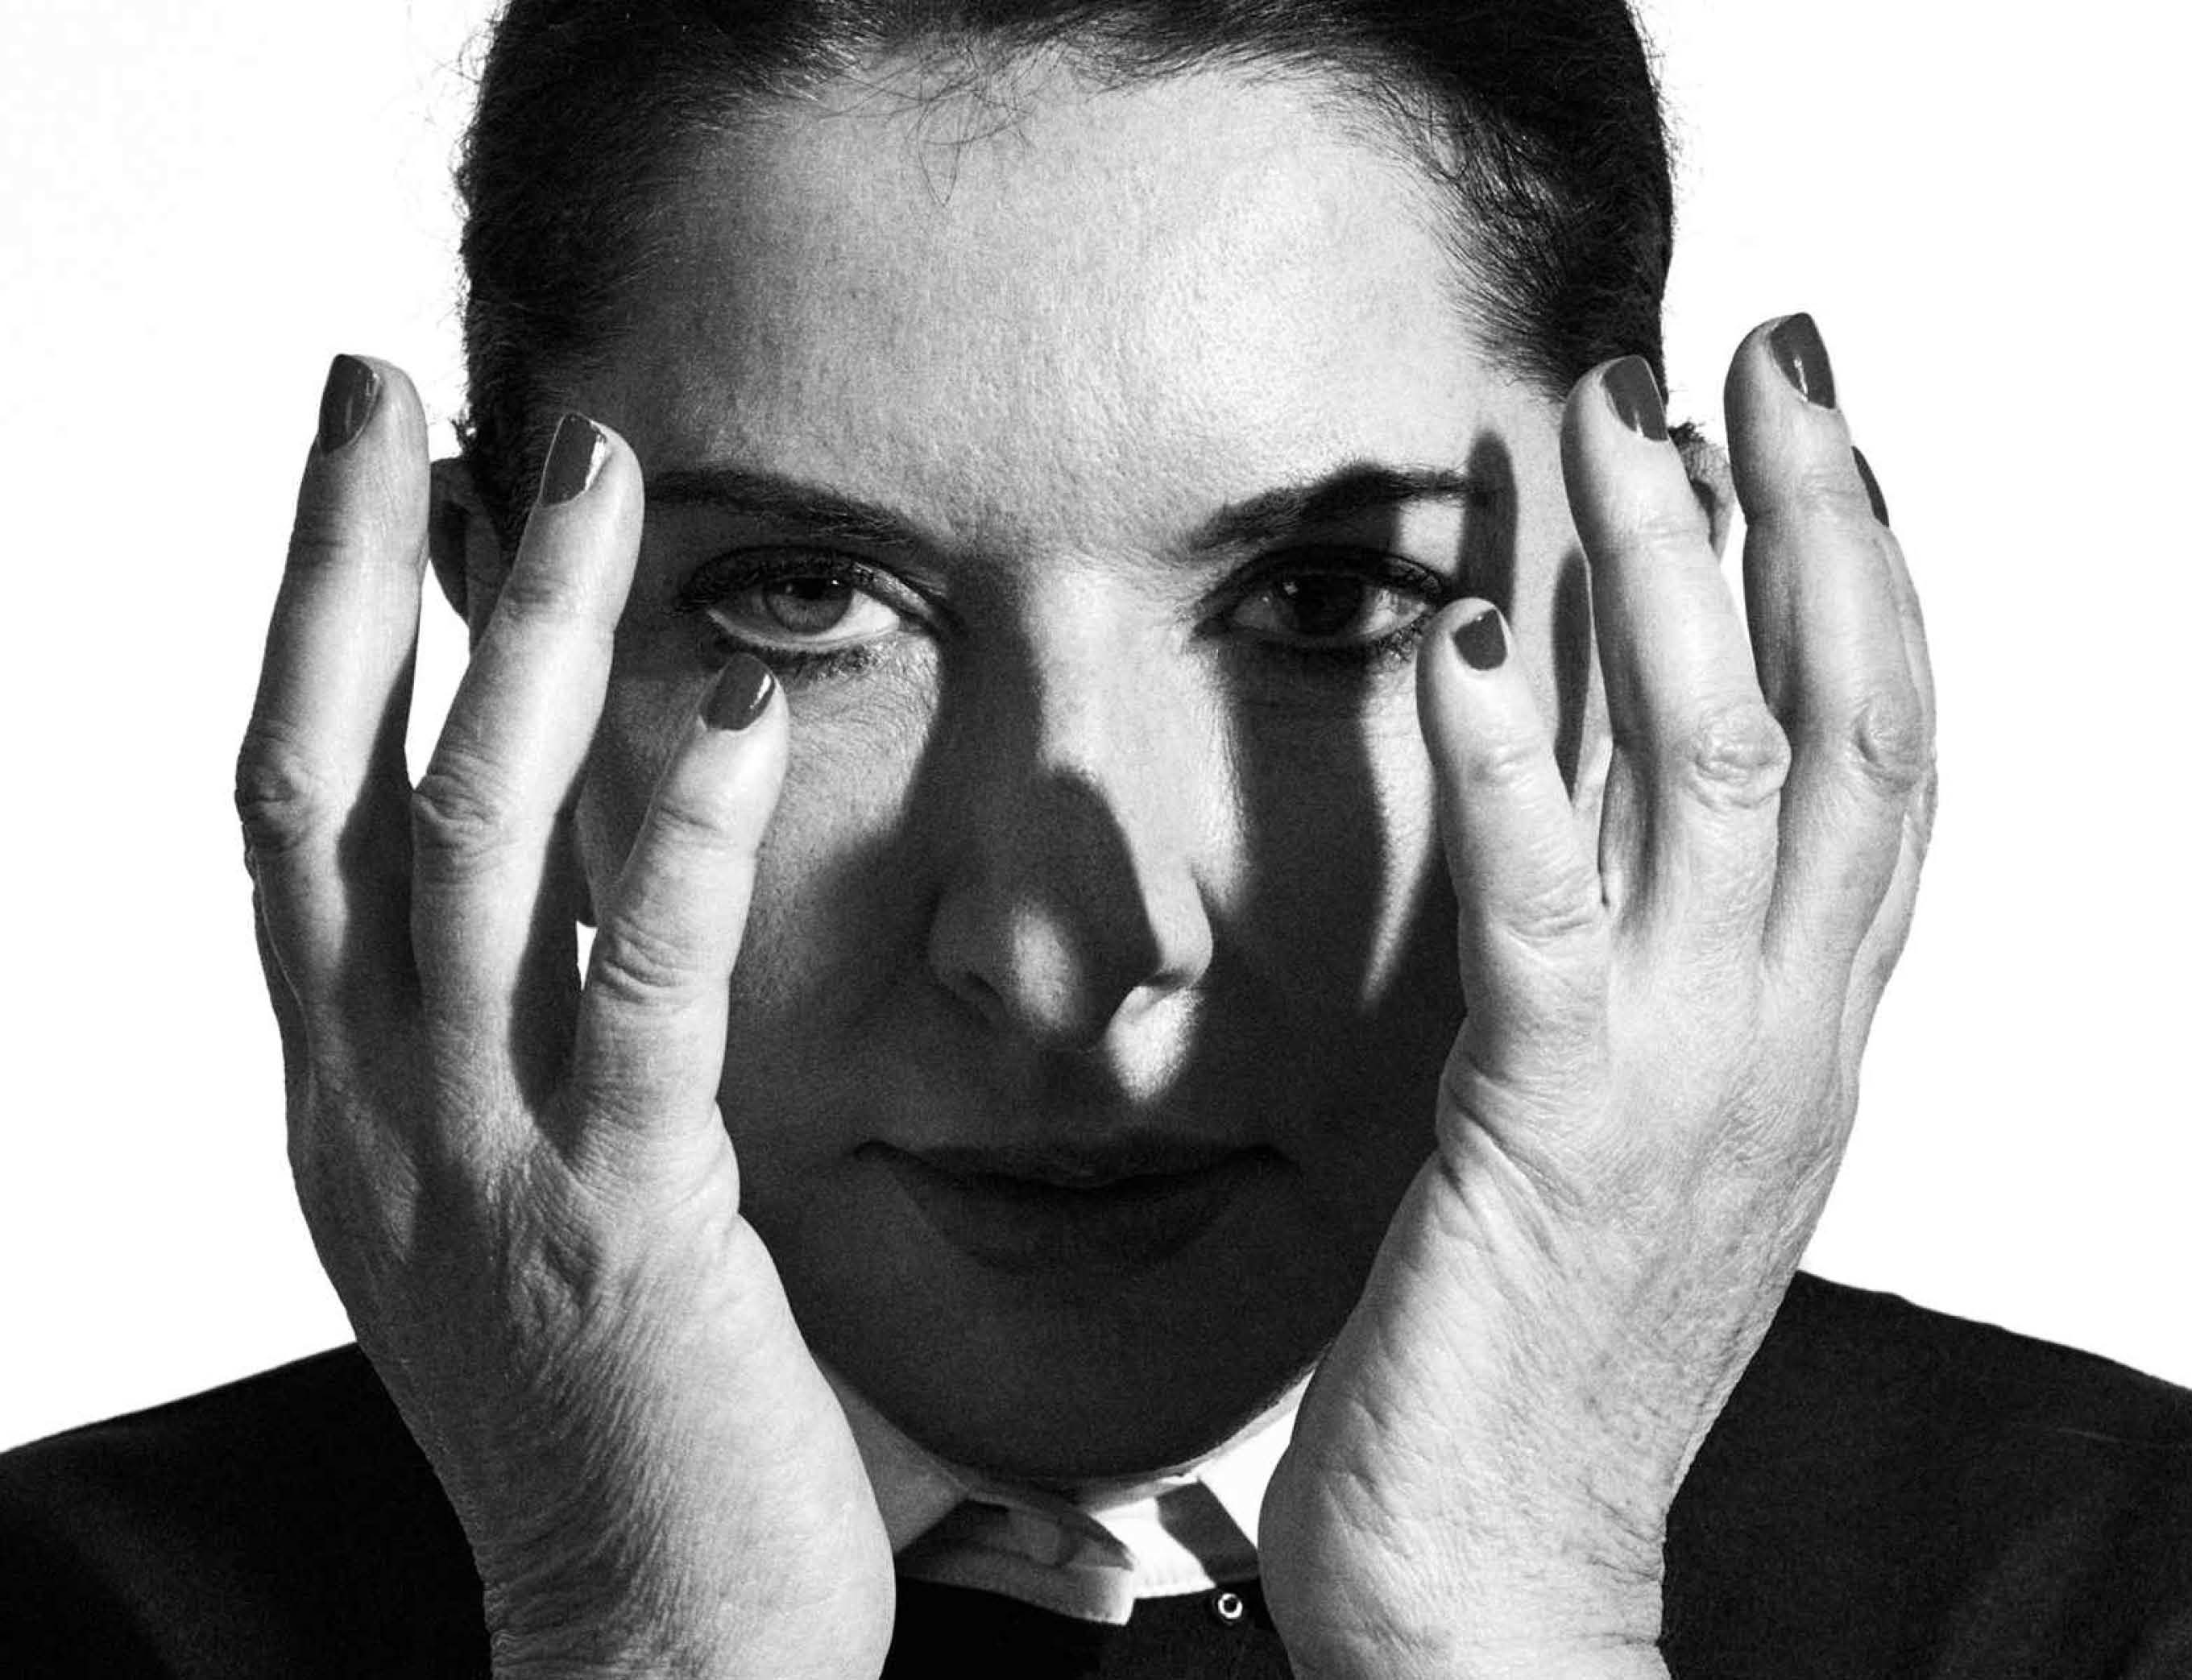 Masterpiece London 2018 showcases new work by Marina Abramović